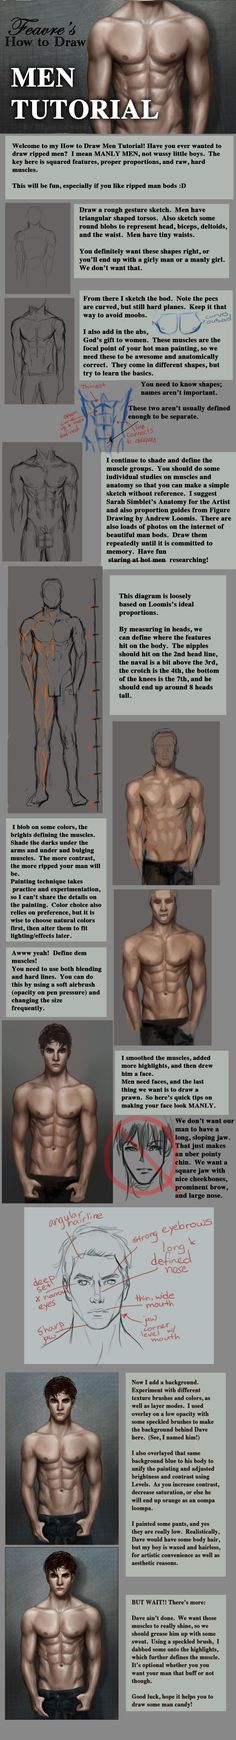 How to Draw Men Tutorial by feavre.deviantart.com on @deviantART #figuredrawingmodels